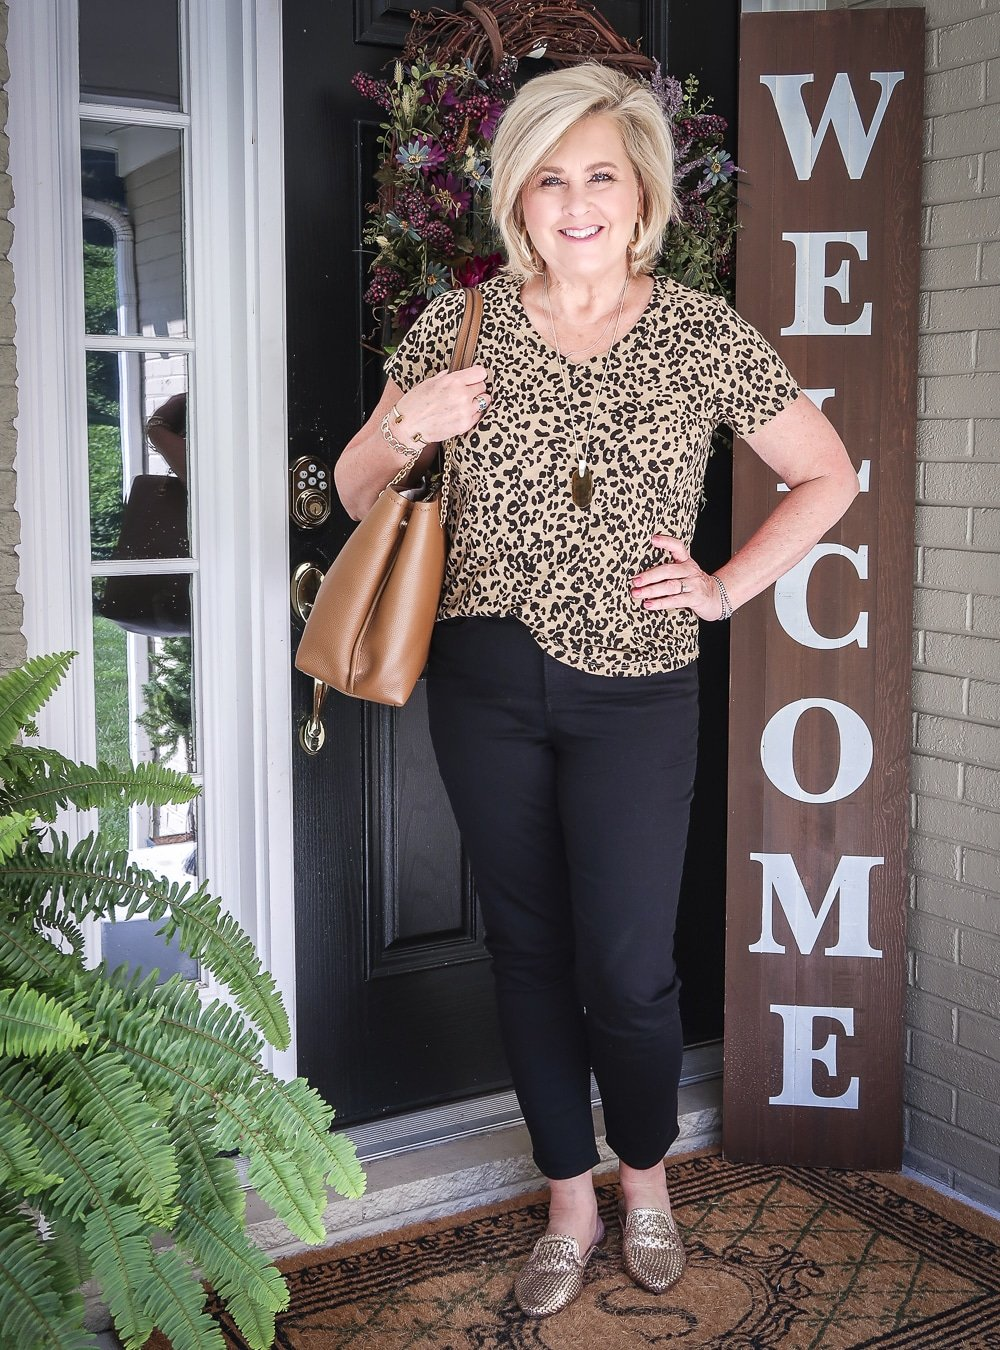 Fashion Blogger 50 Is Not Old is wearing a v-neck leopard tee, black girlfriend jeans, gold mules, and carrying a brown Tory Burch tote